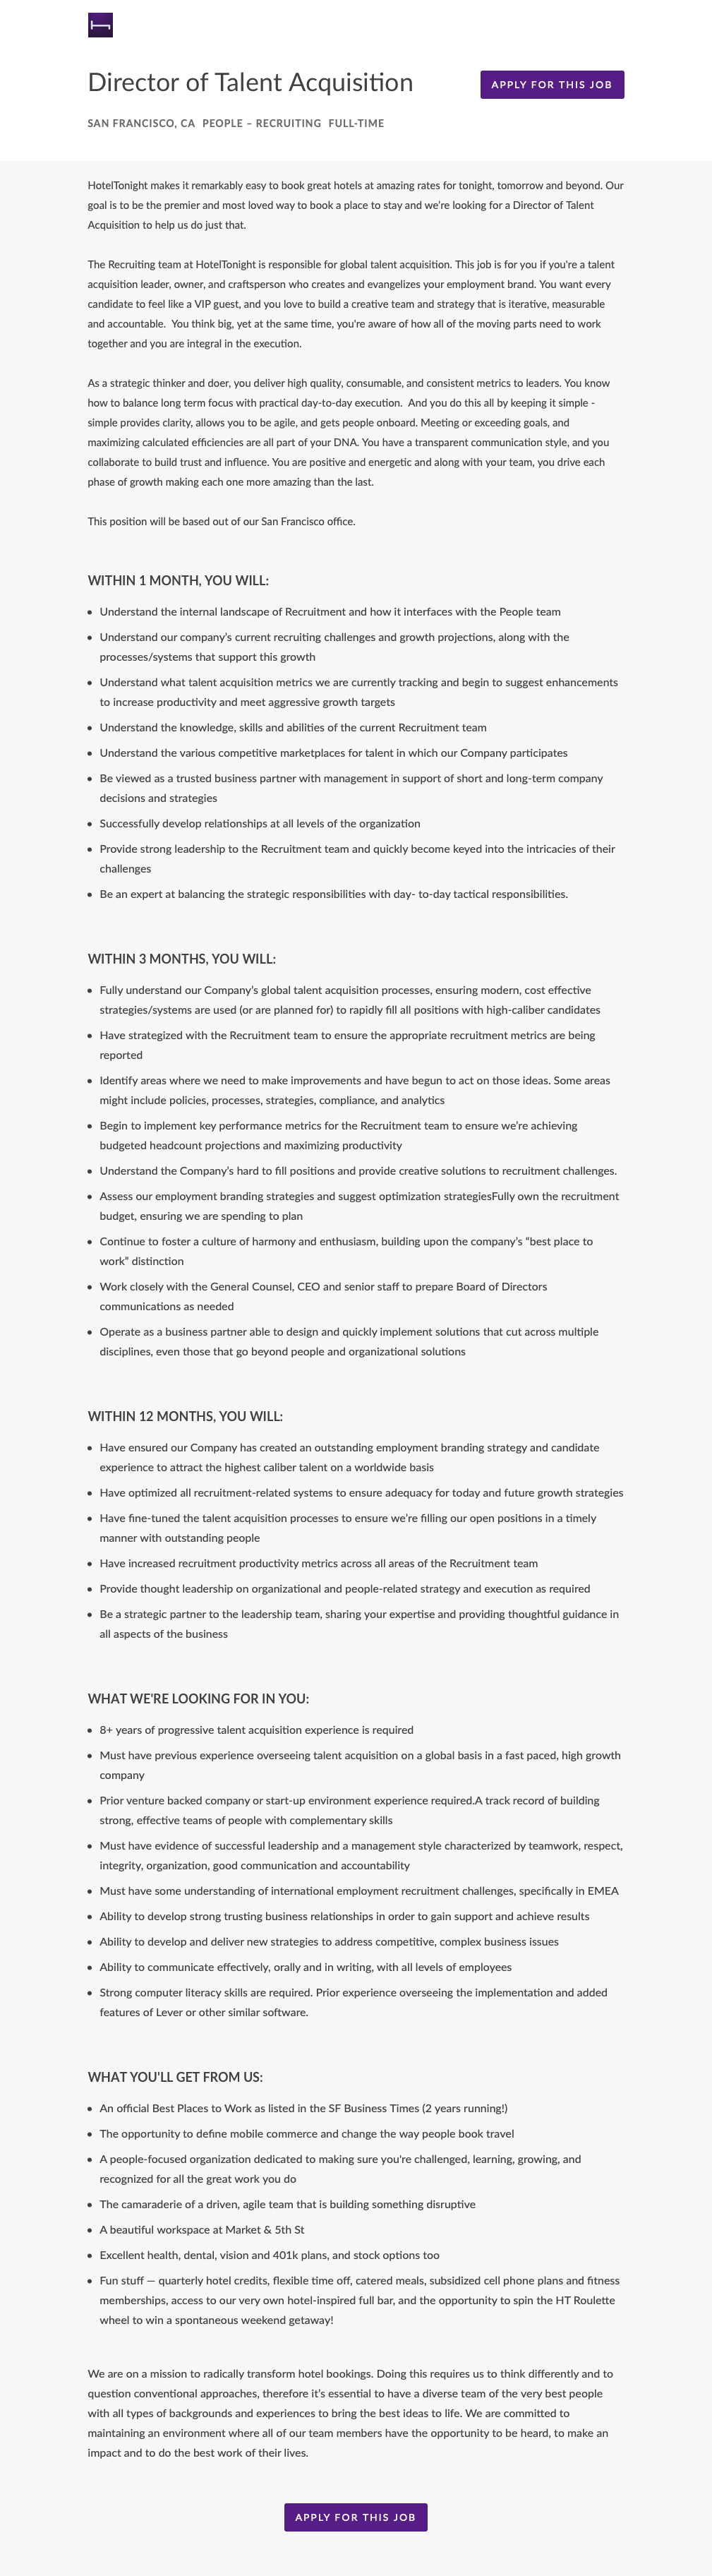 Recruit Differently - HotelTonight Job Posting.png